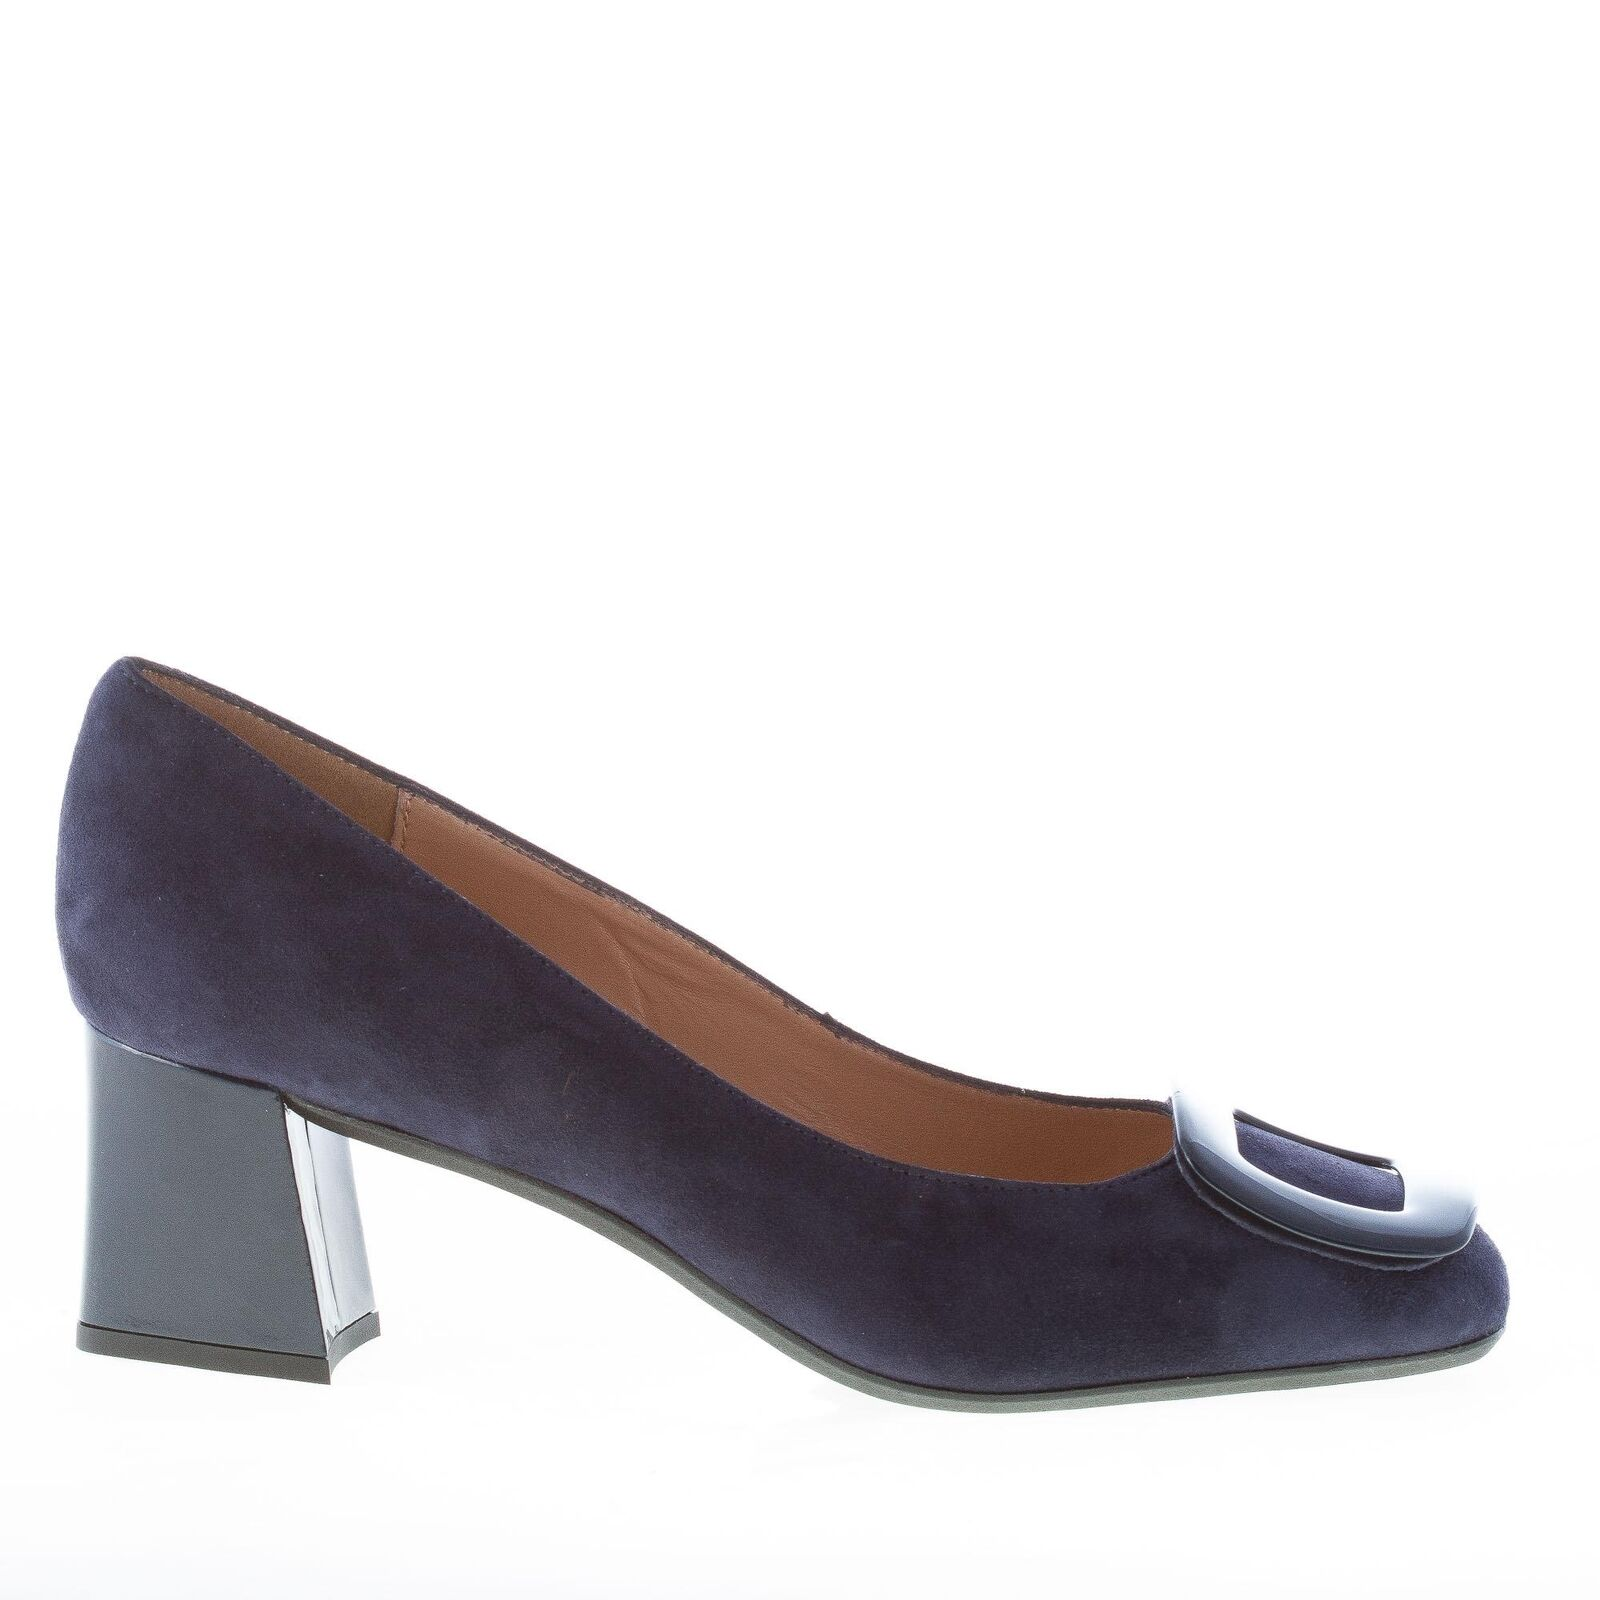 IL BORGO FIRENZE damen schuhe made in Italy Blue suede pump with navy buckle